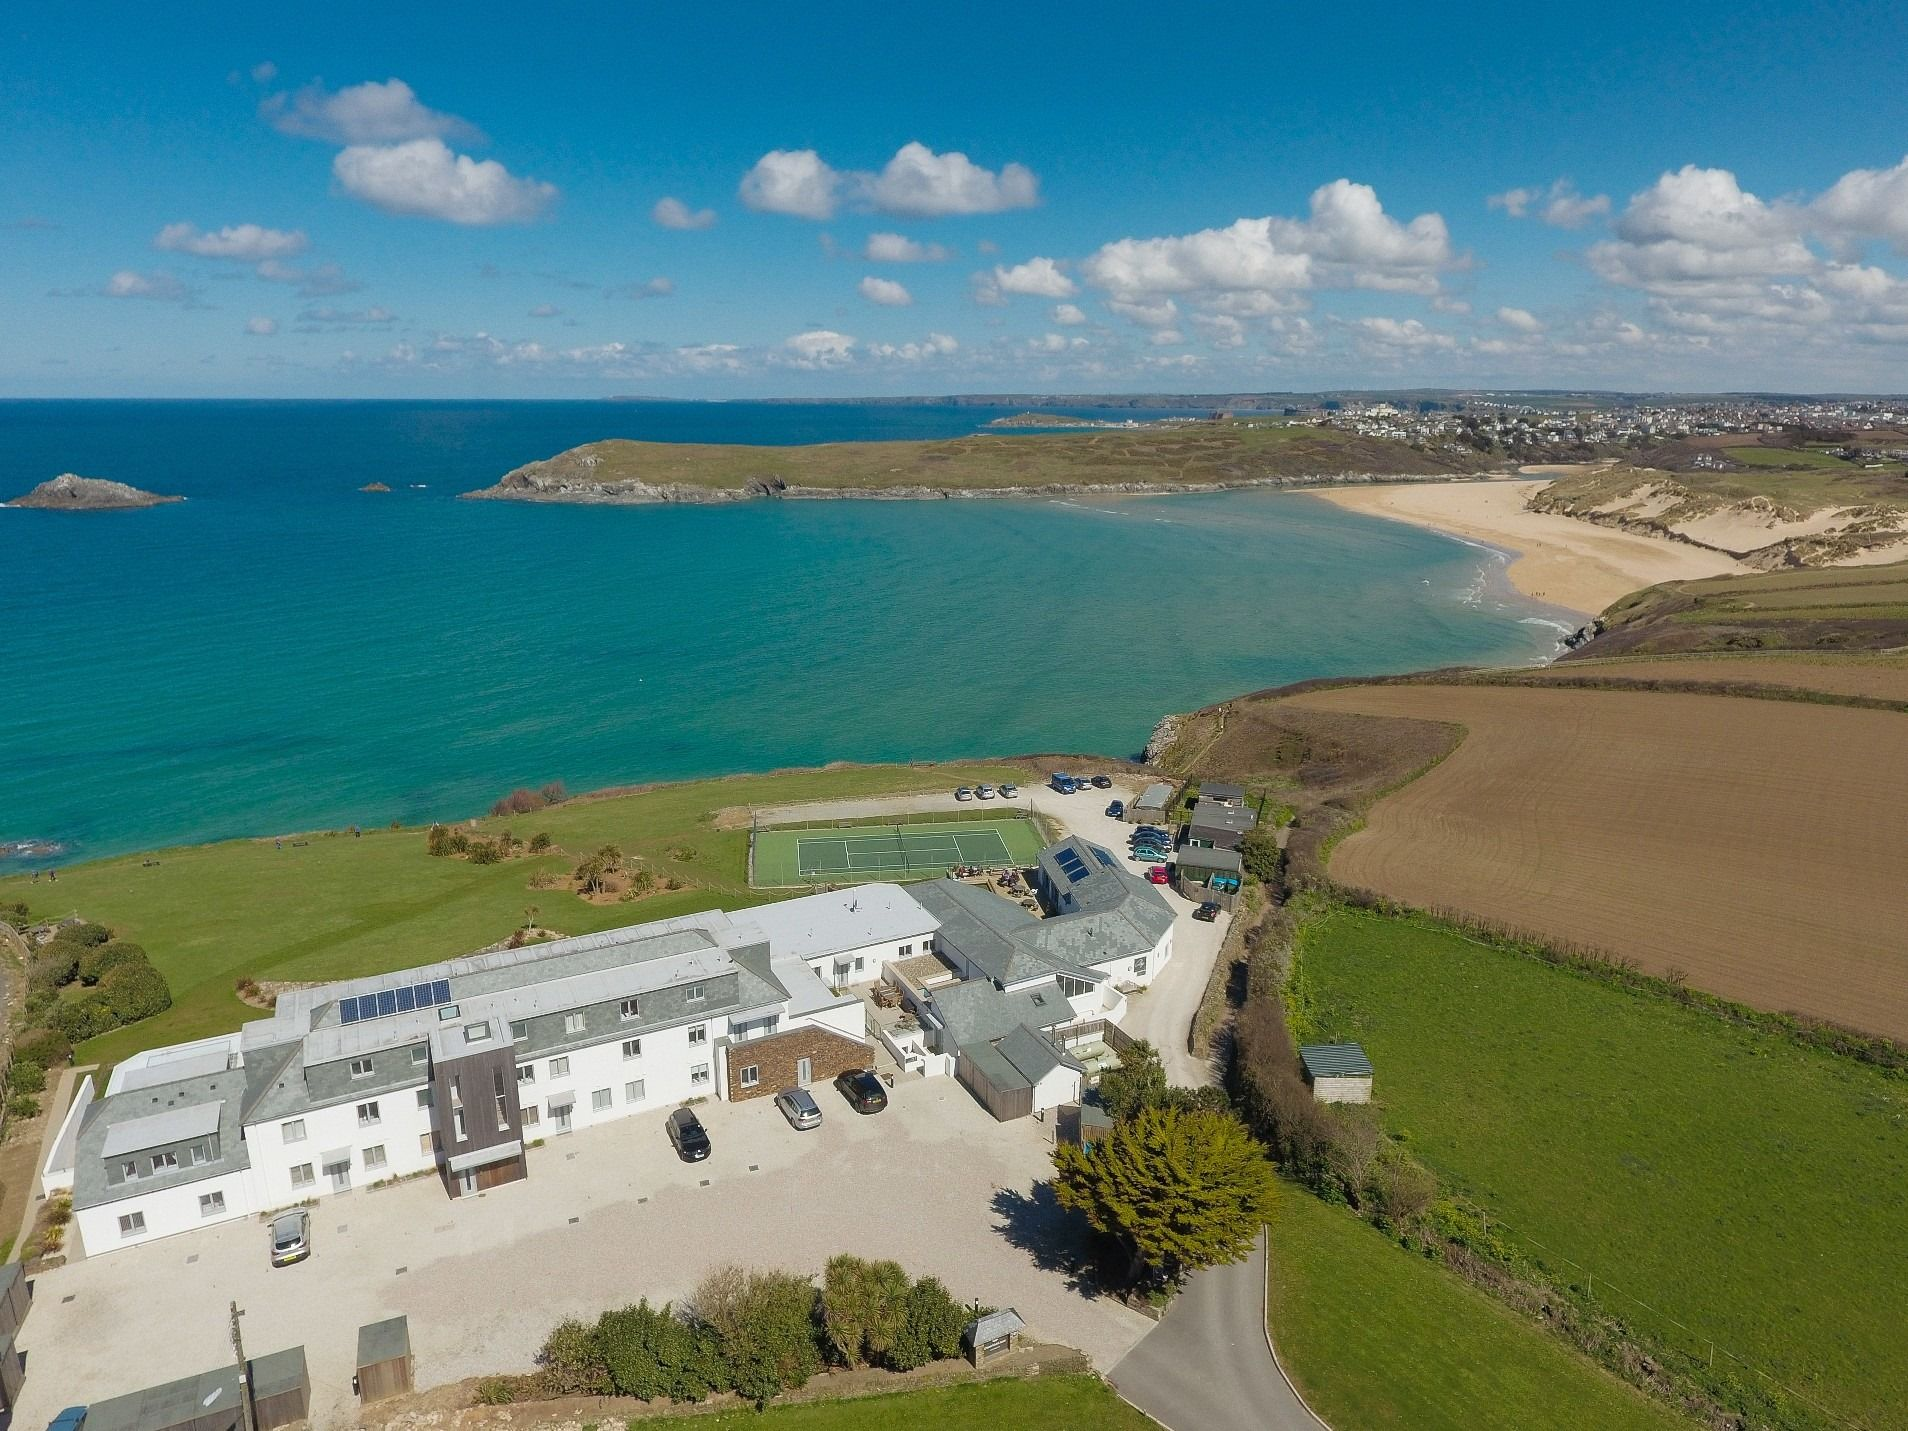 Crantock Bay Apartments West Pentire Newquay Cornwall England